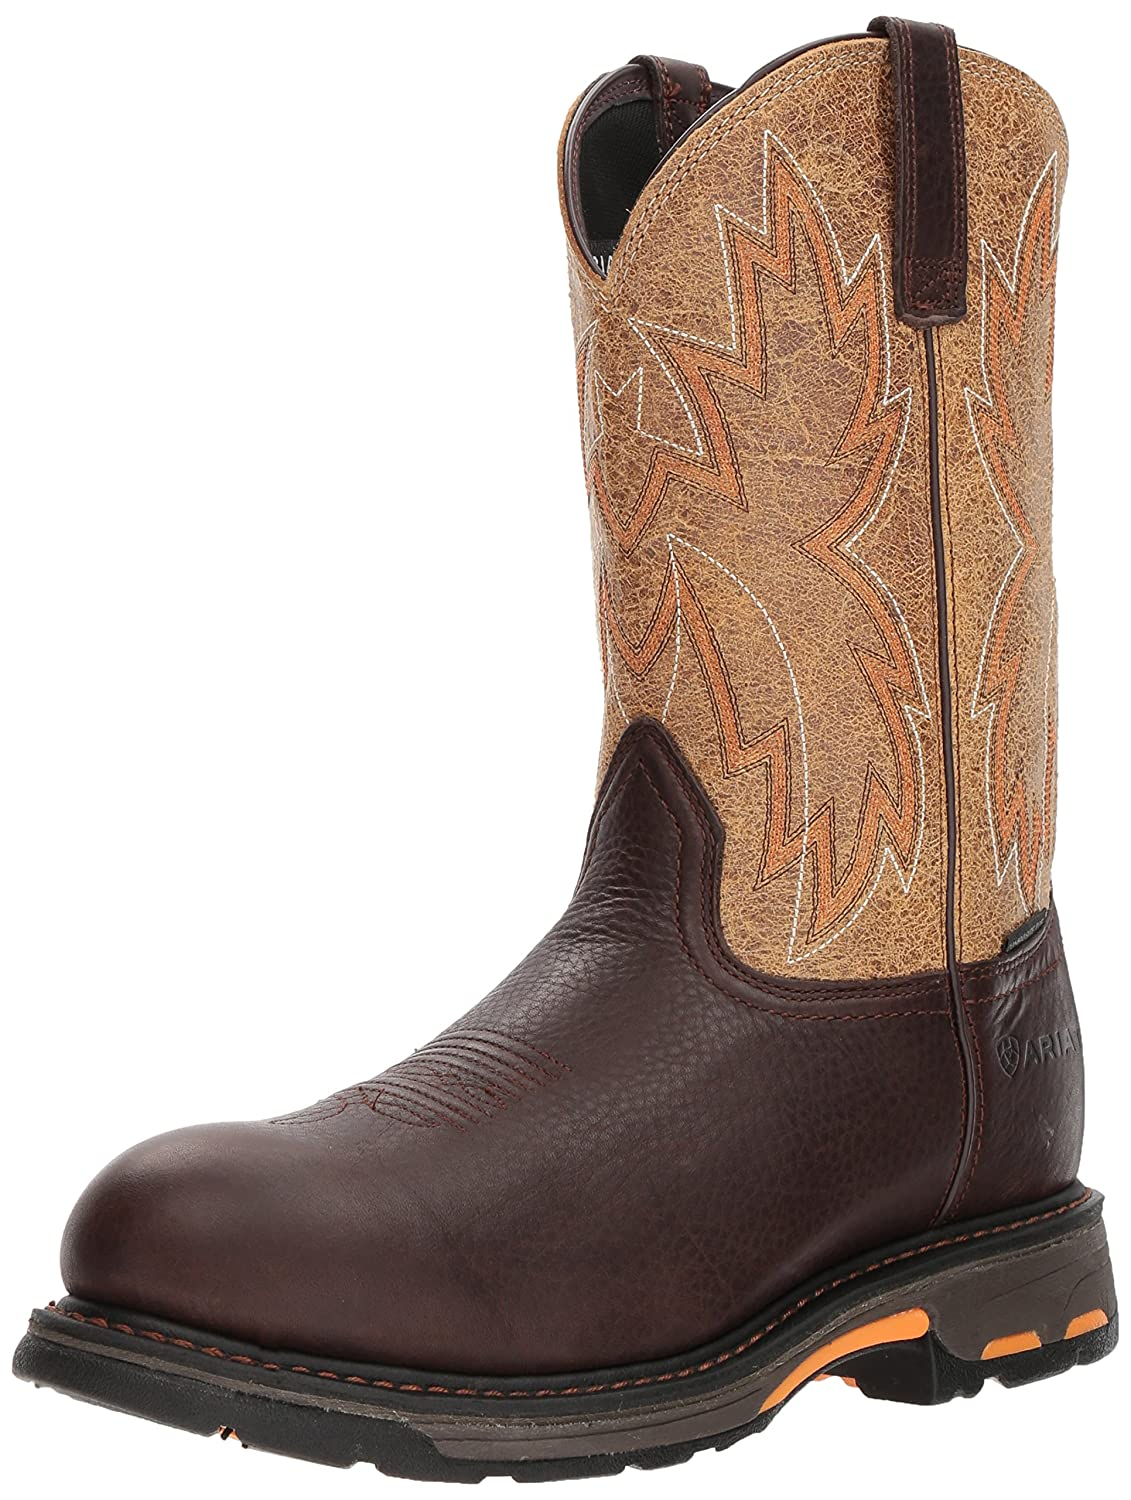 Ariat Work メンズ Workhog Raptor Composite Toe Dark Chocolate/Crazy Tan 10.5 E US 10.5 E USDark Chocolate/Crazy Tan B076RCXDZB